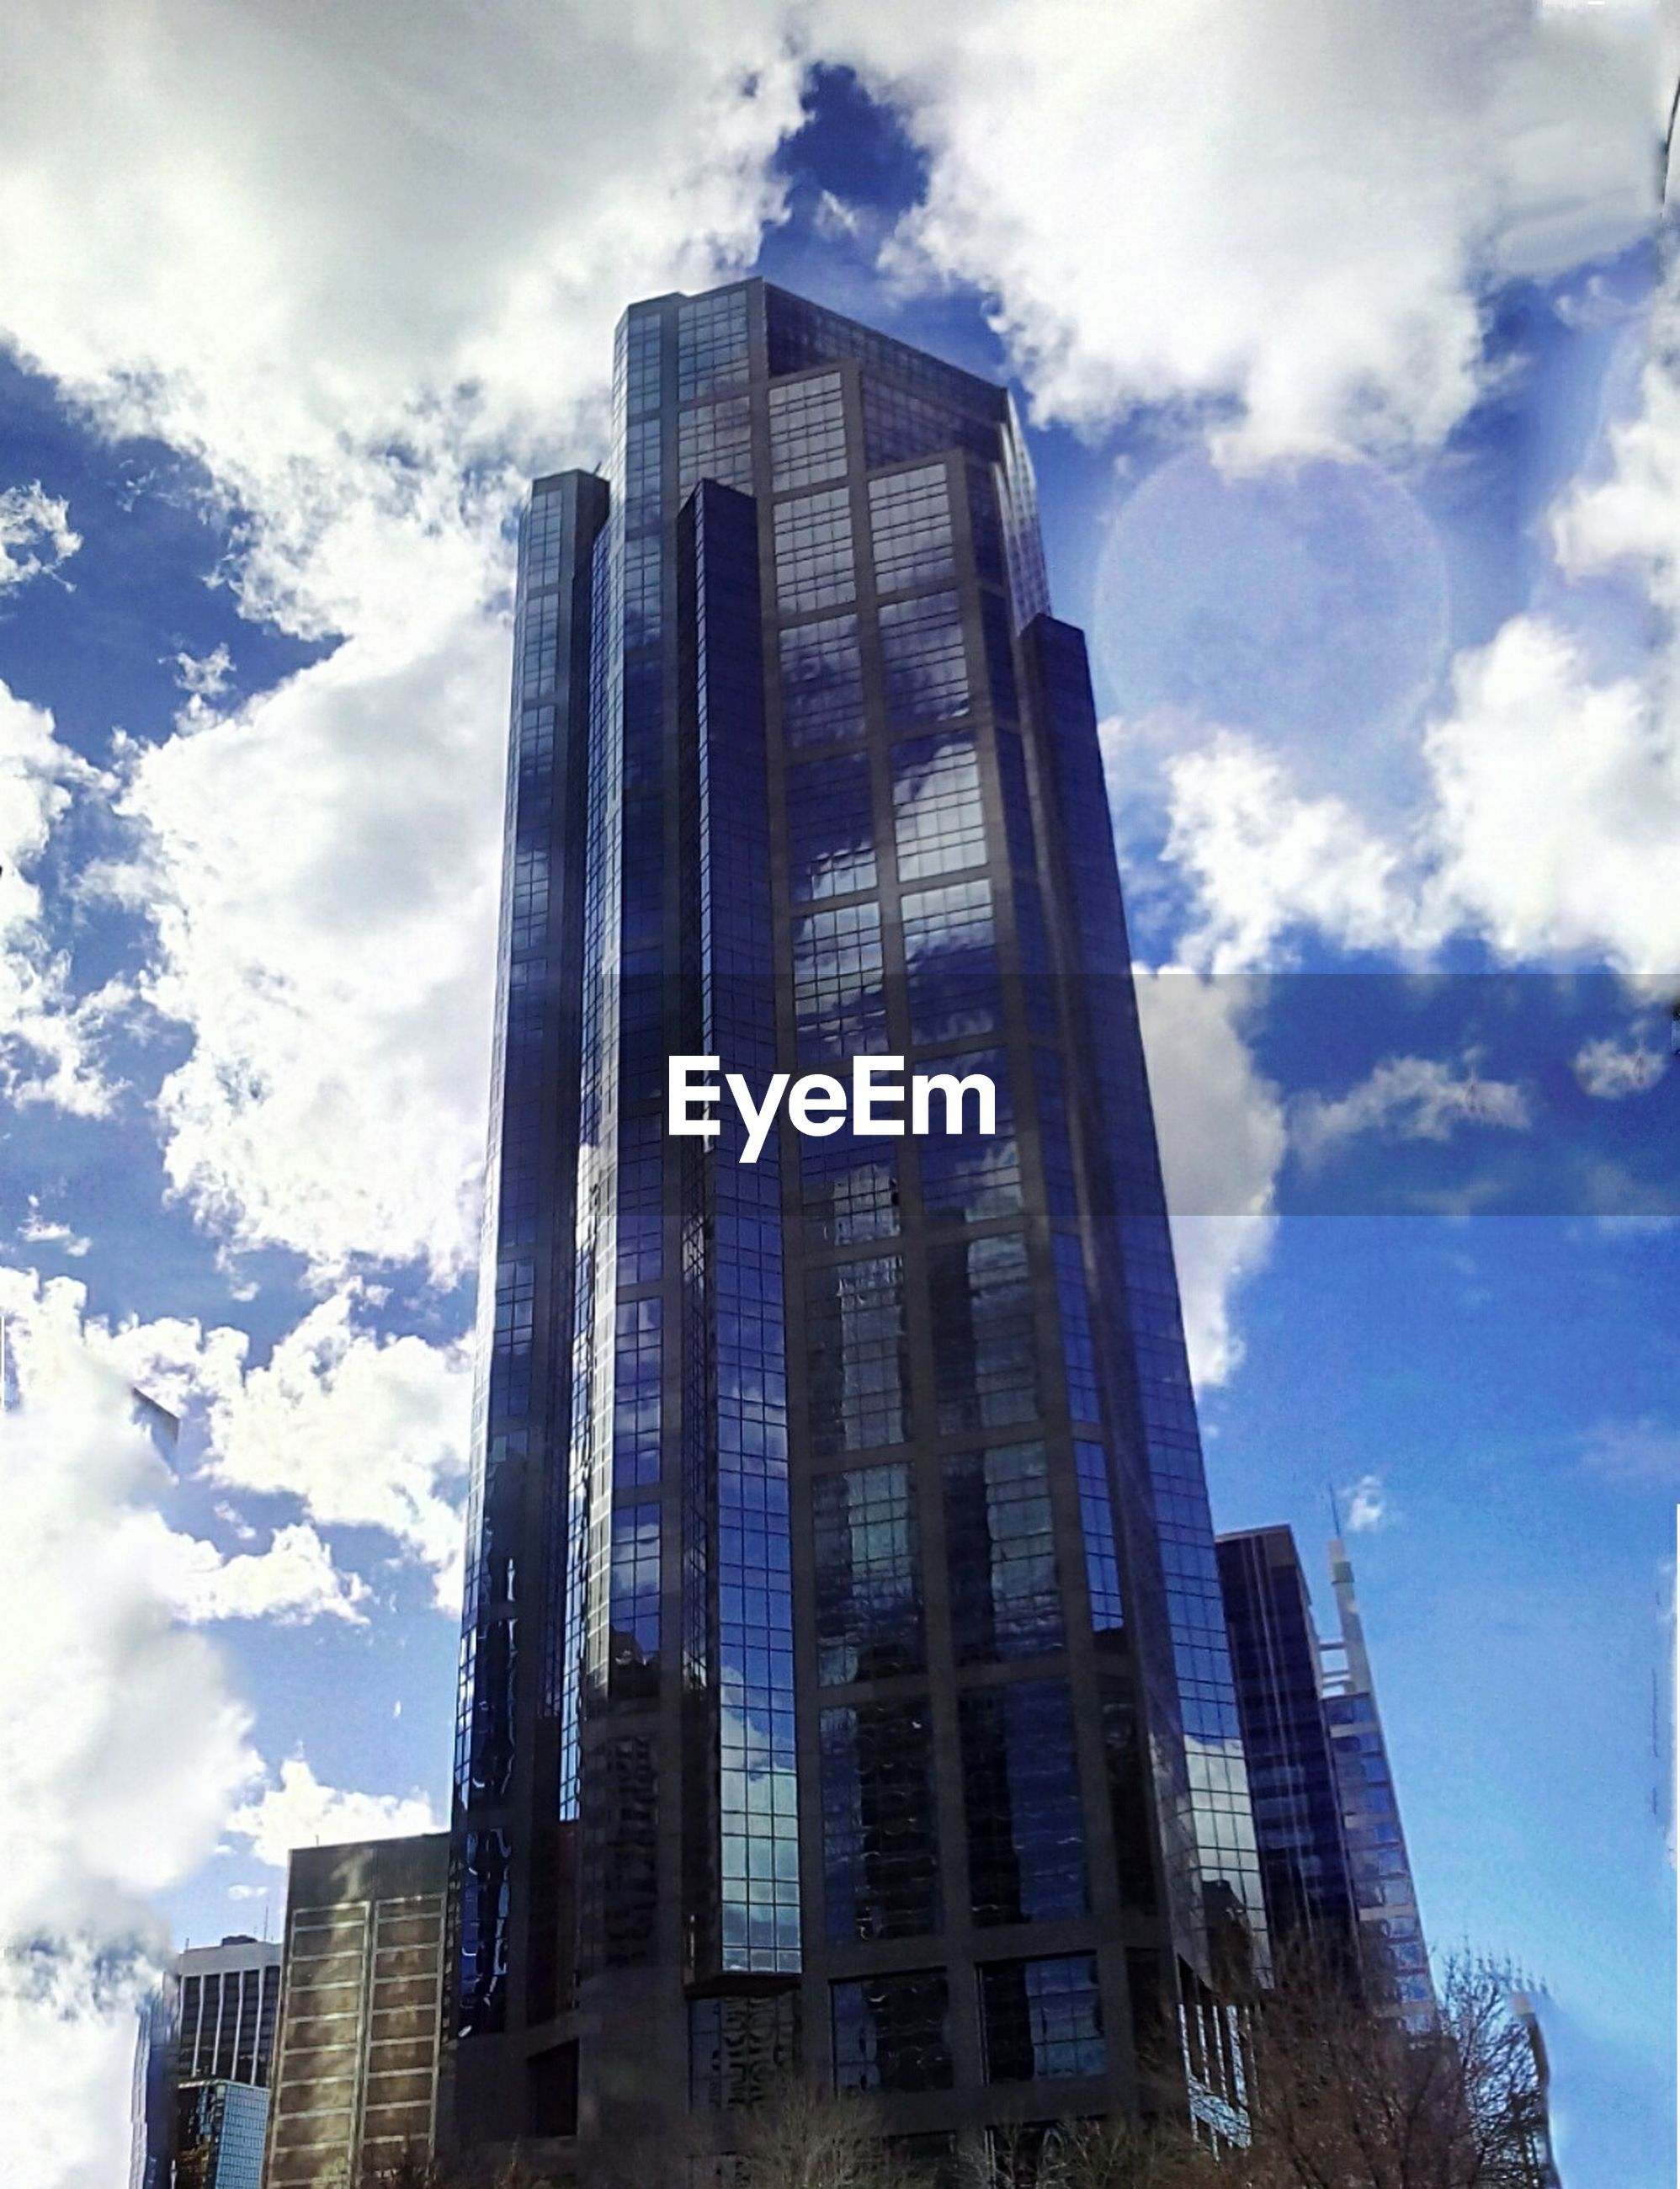 building exterior, architecture, built structure, skyscraper, modern, office building, city, tall - high, low angle view, tower, sky, cloud - sky, glass - material, building, tall, reflection, financial district, cloud, city life, urban skyline